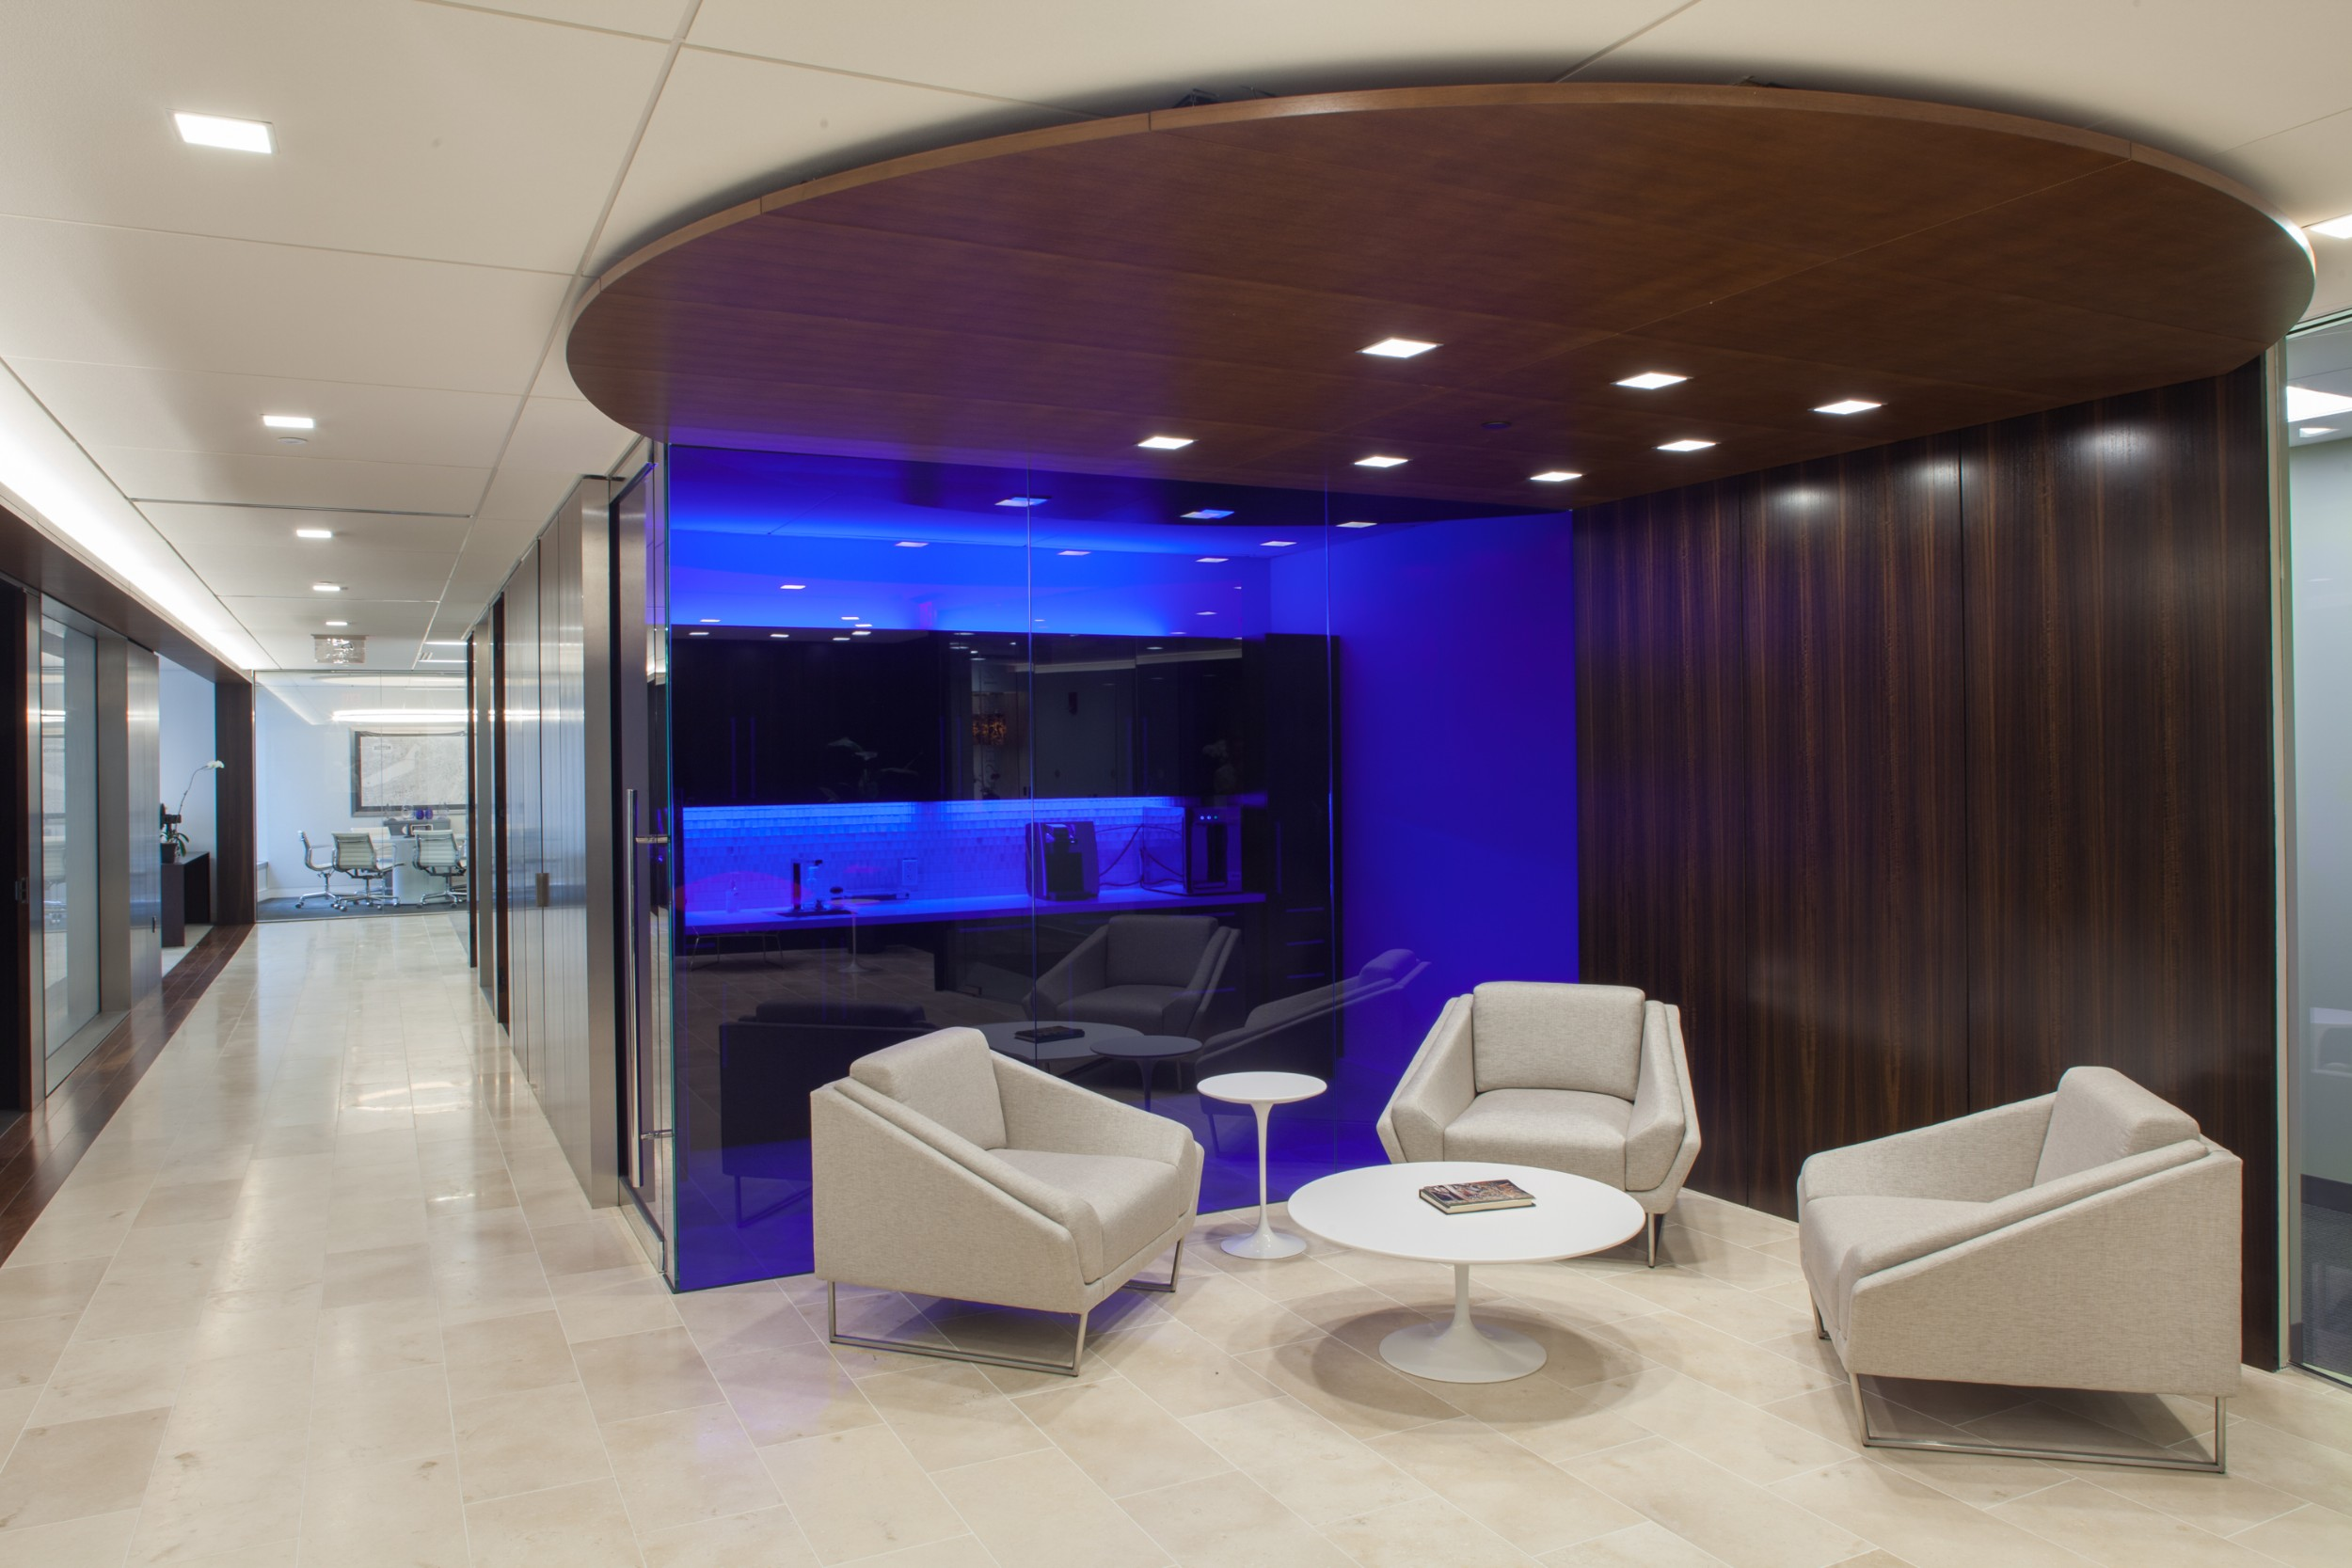 Boston_Investor_Services_Northern_Cross_Reception_Hallway_Seating_Lighting_Corderman_Construction.jpg